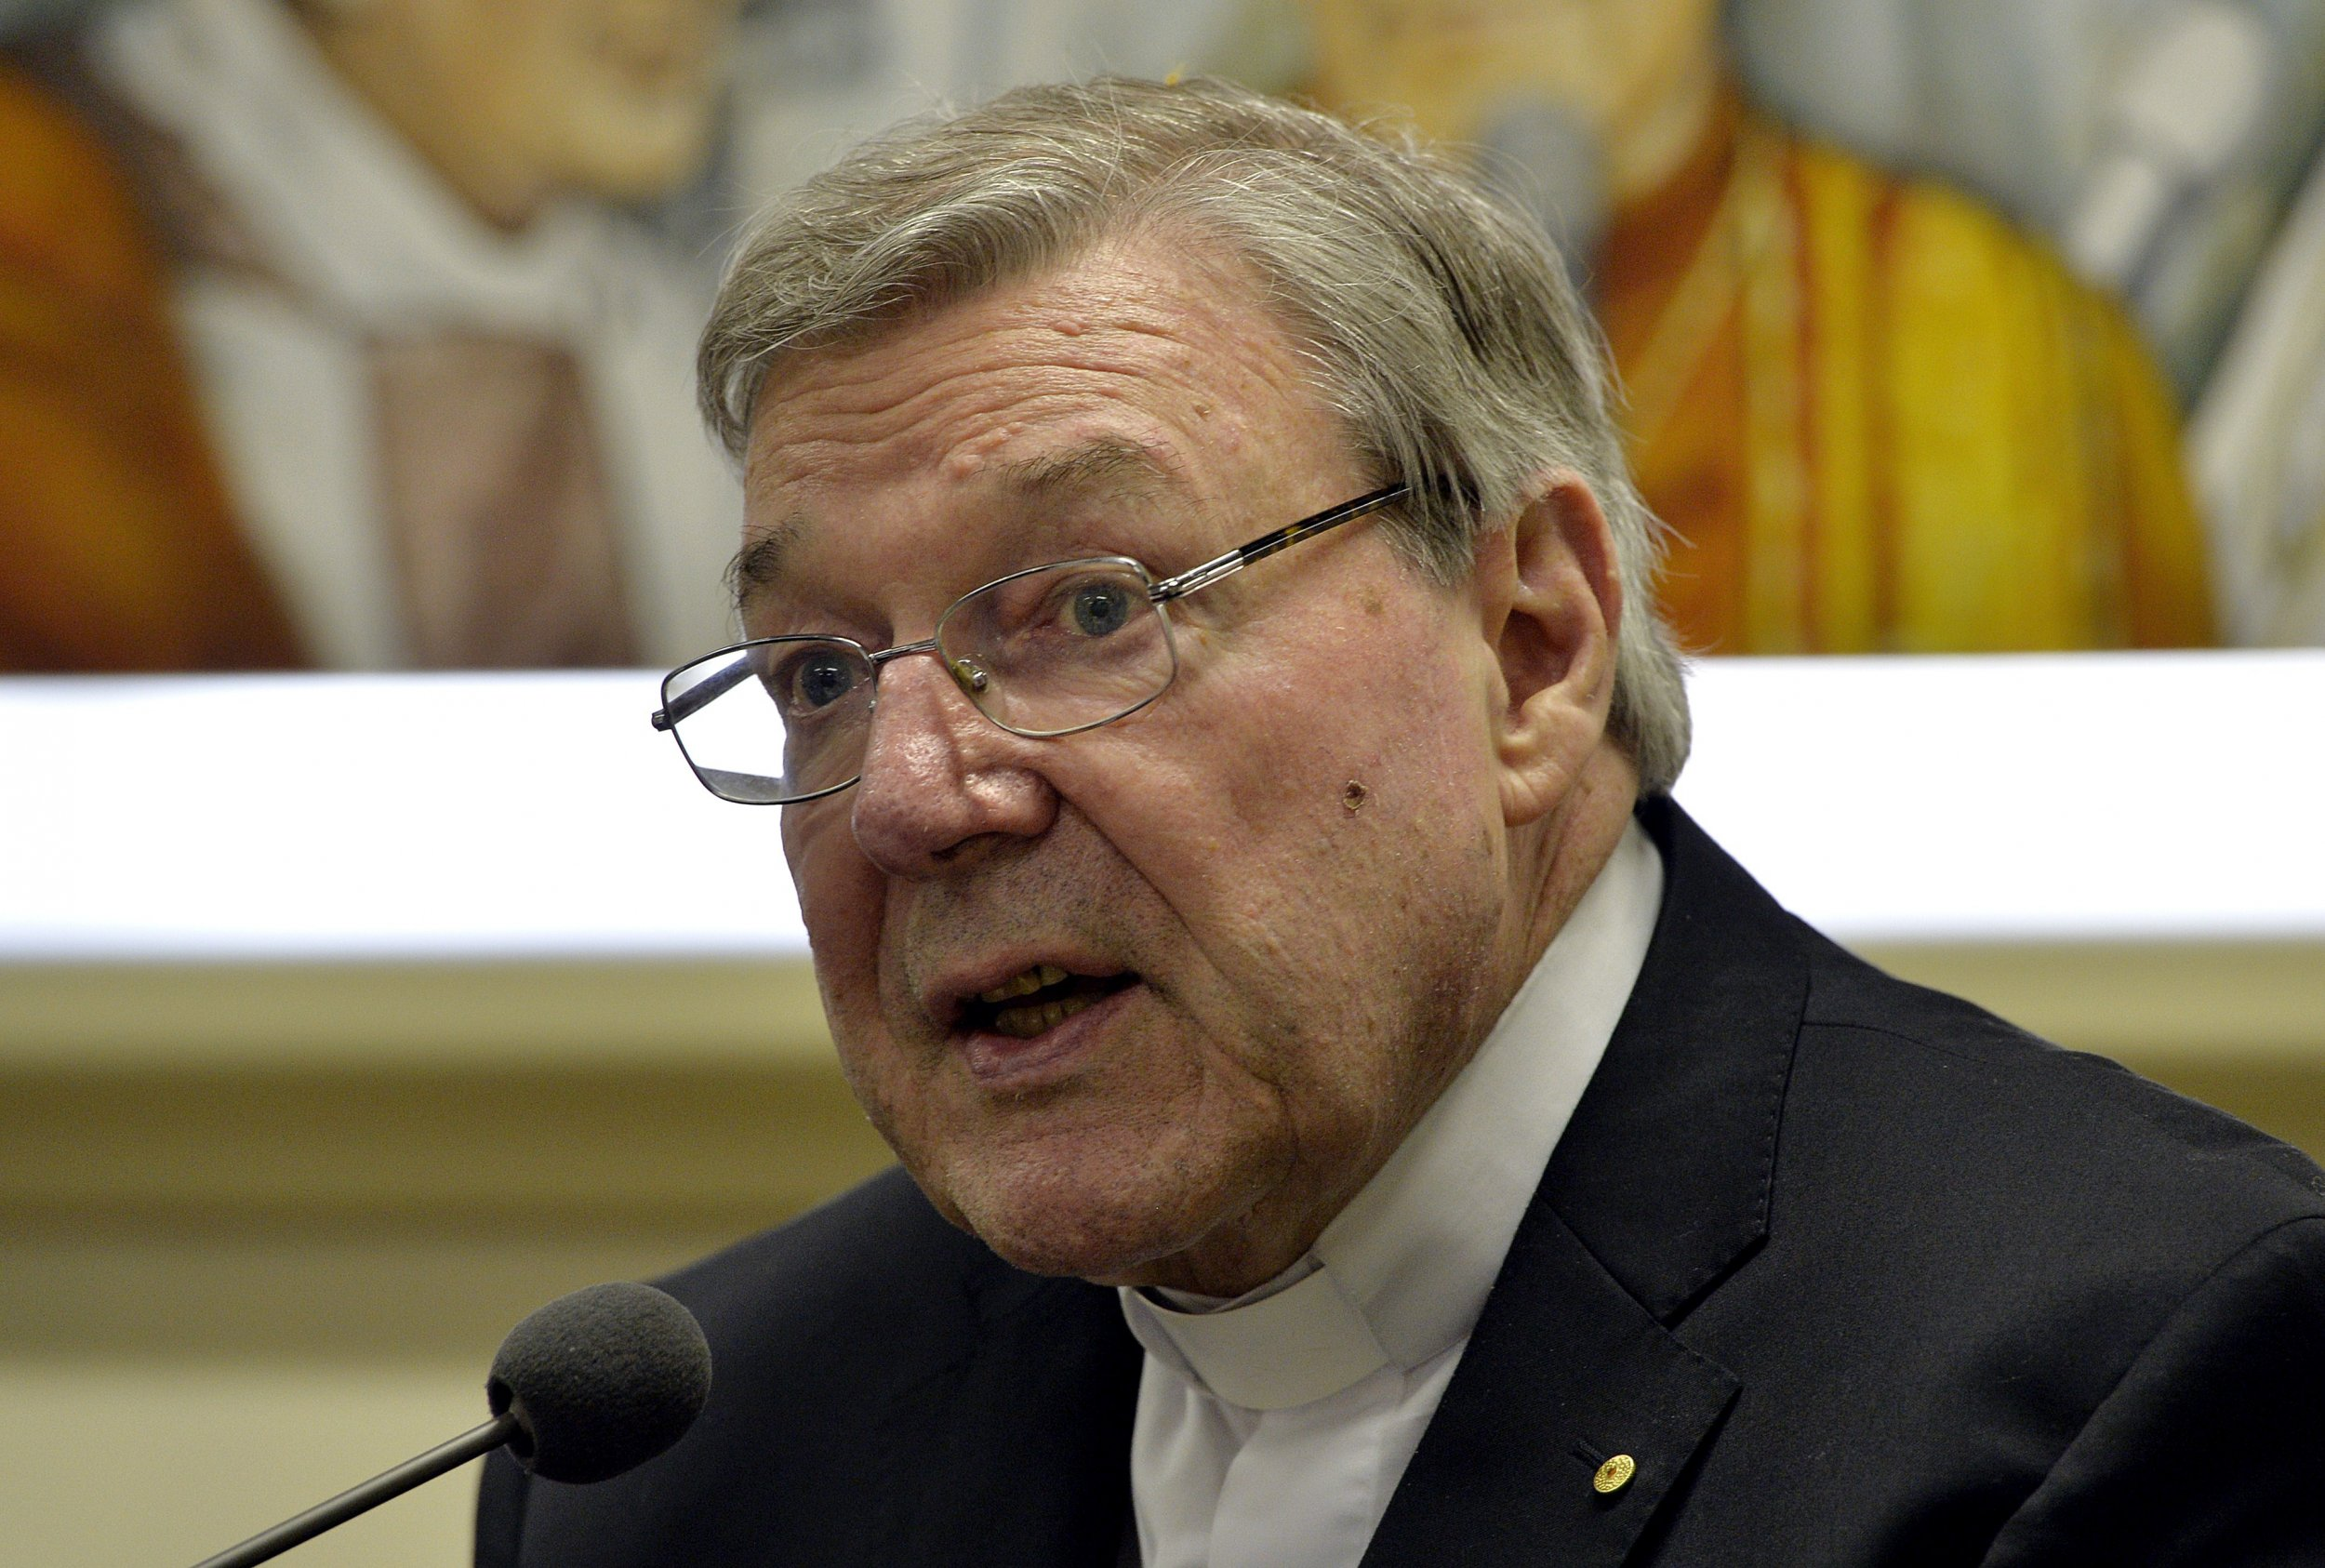 Australian Cardinal George Pell at a Vatican press conference.